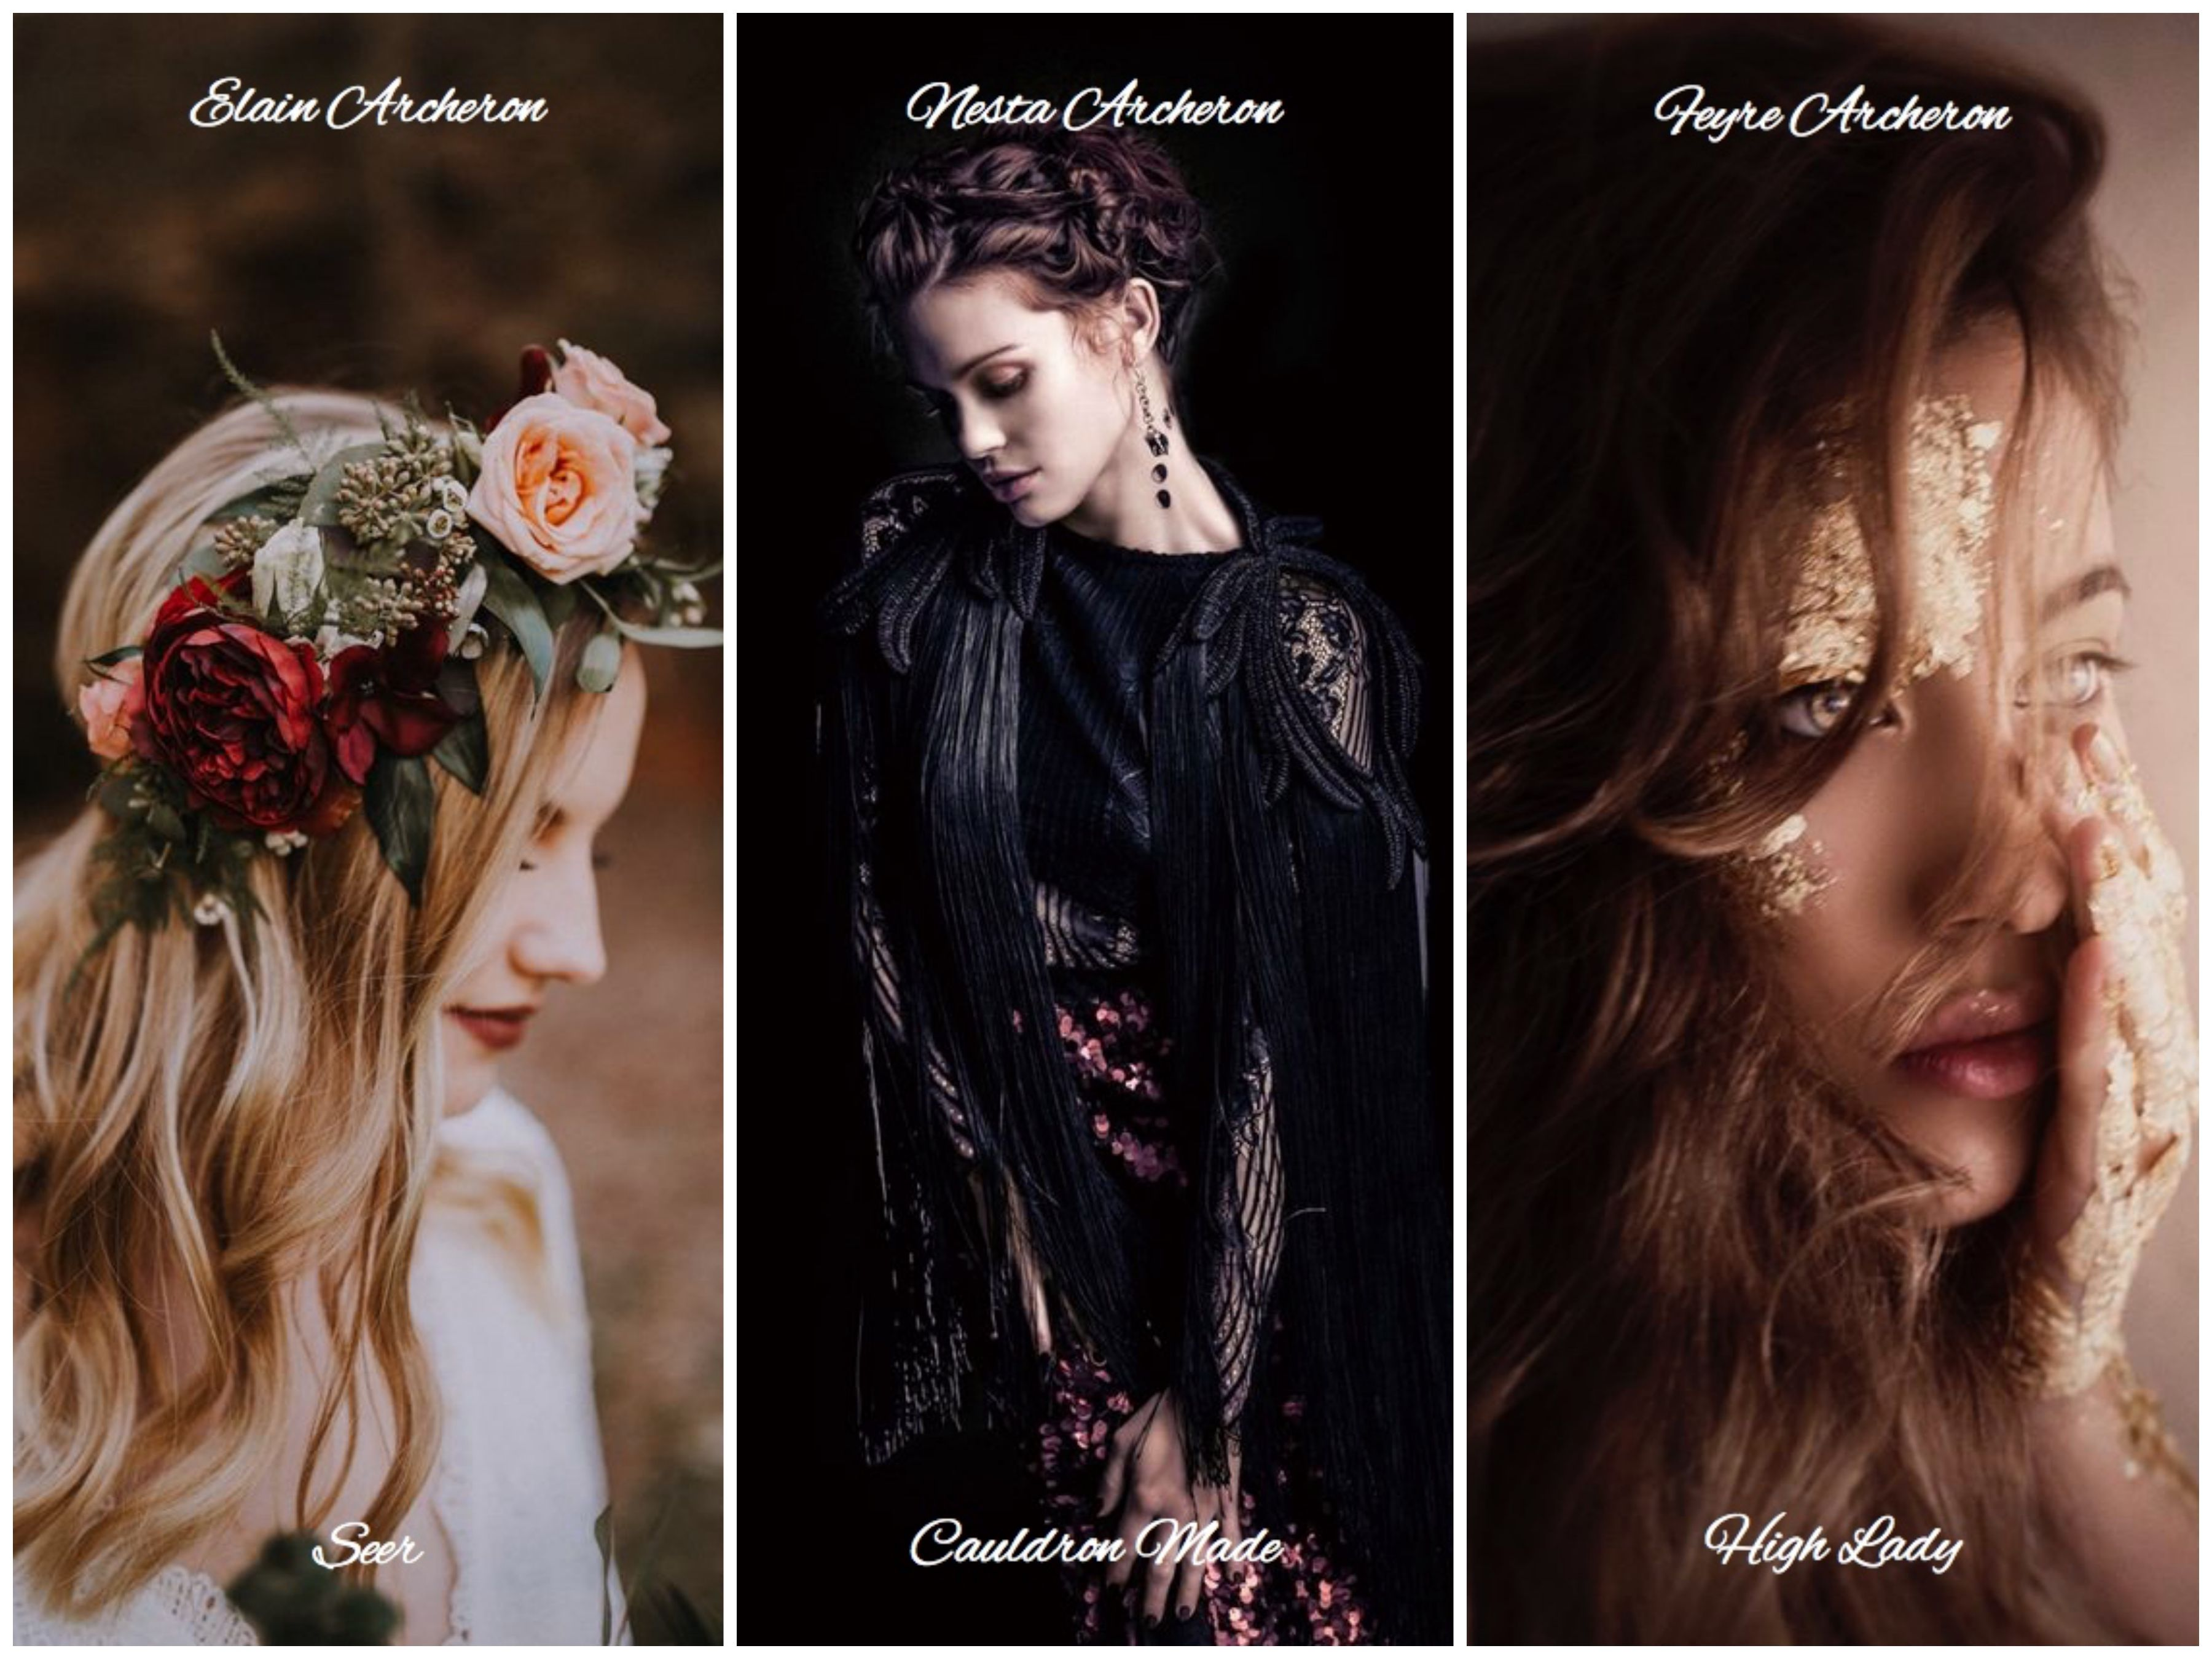 The Archeron Sisters A Court Of Thorns And Roses Sarah J Maas